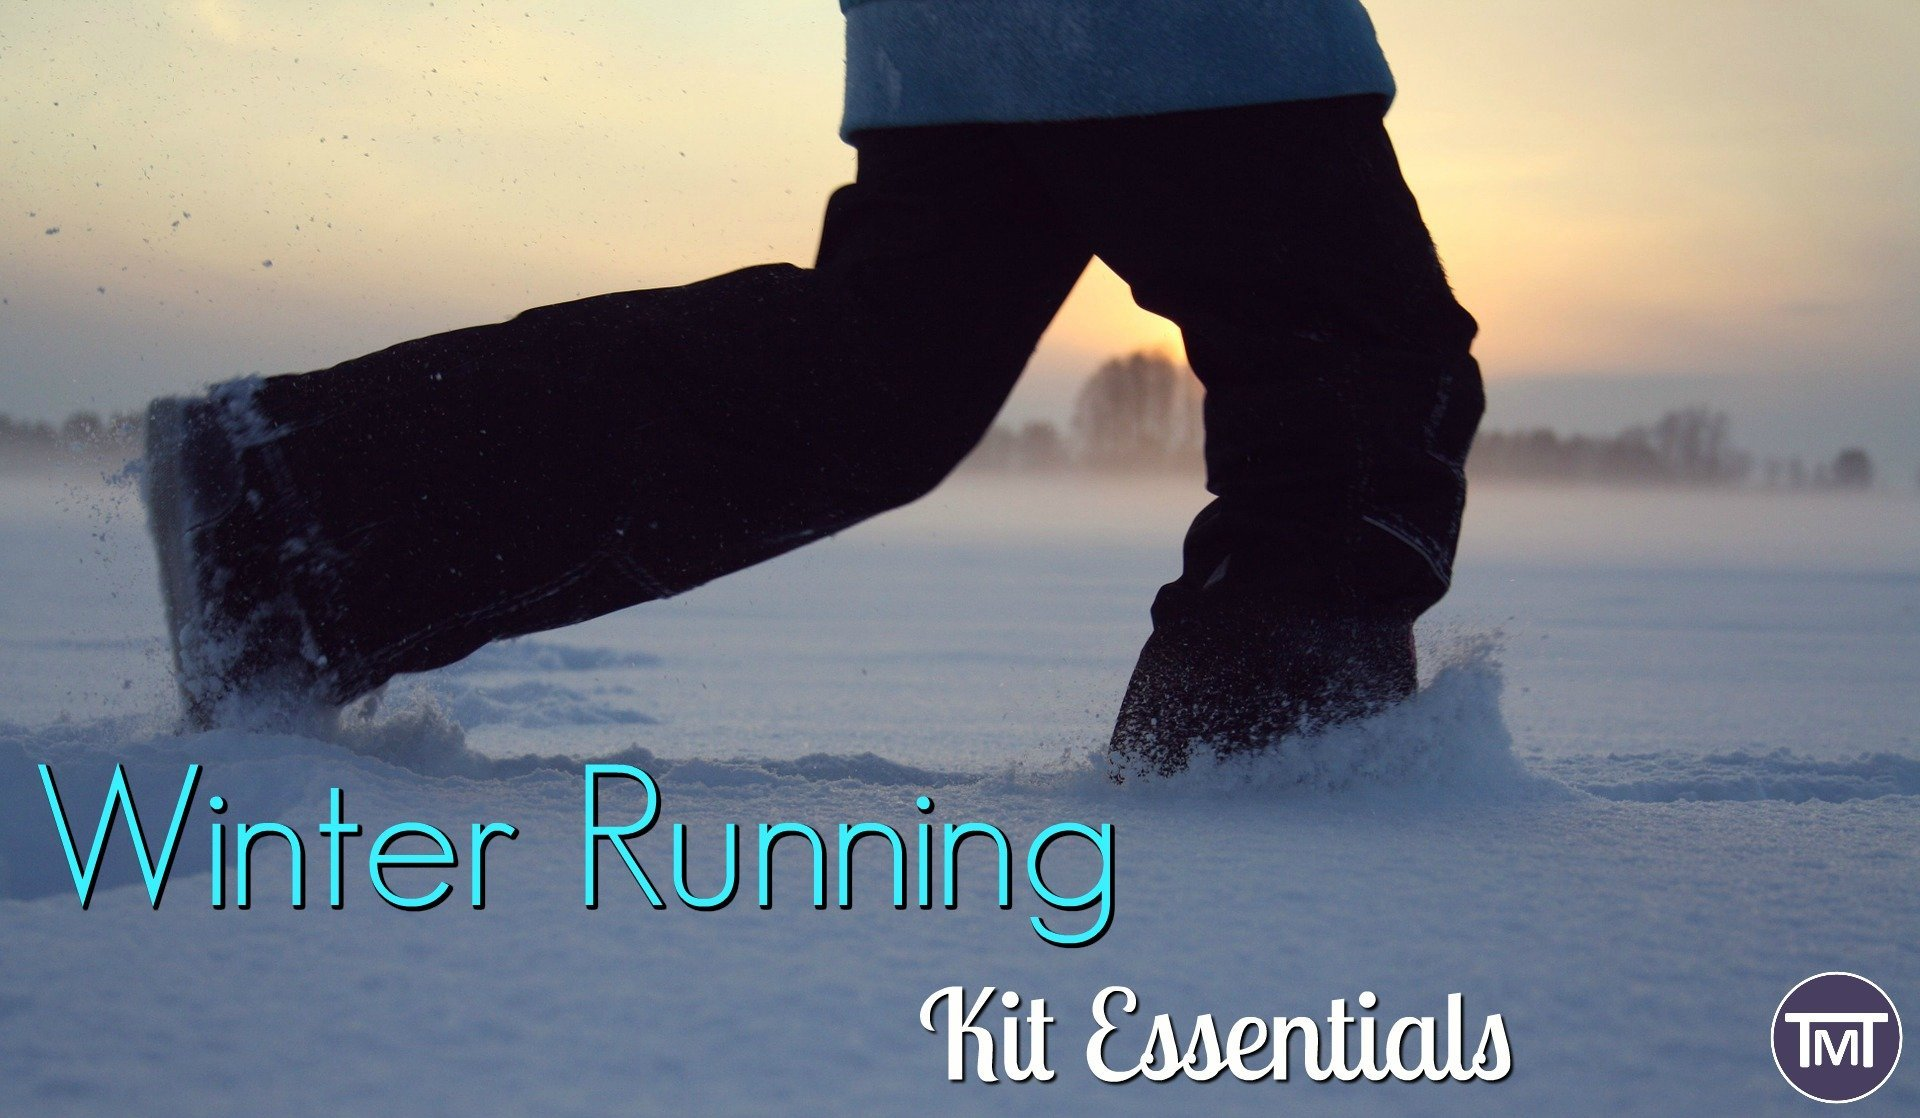 winter running kit essentials feature image